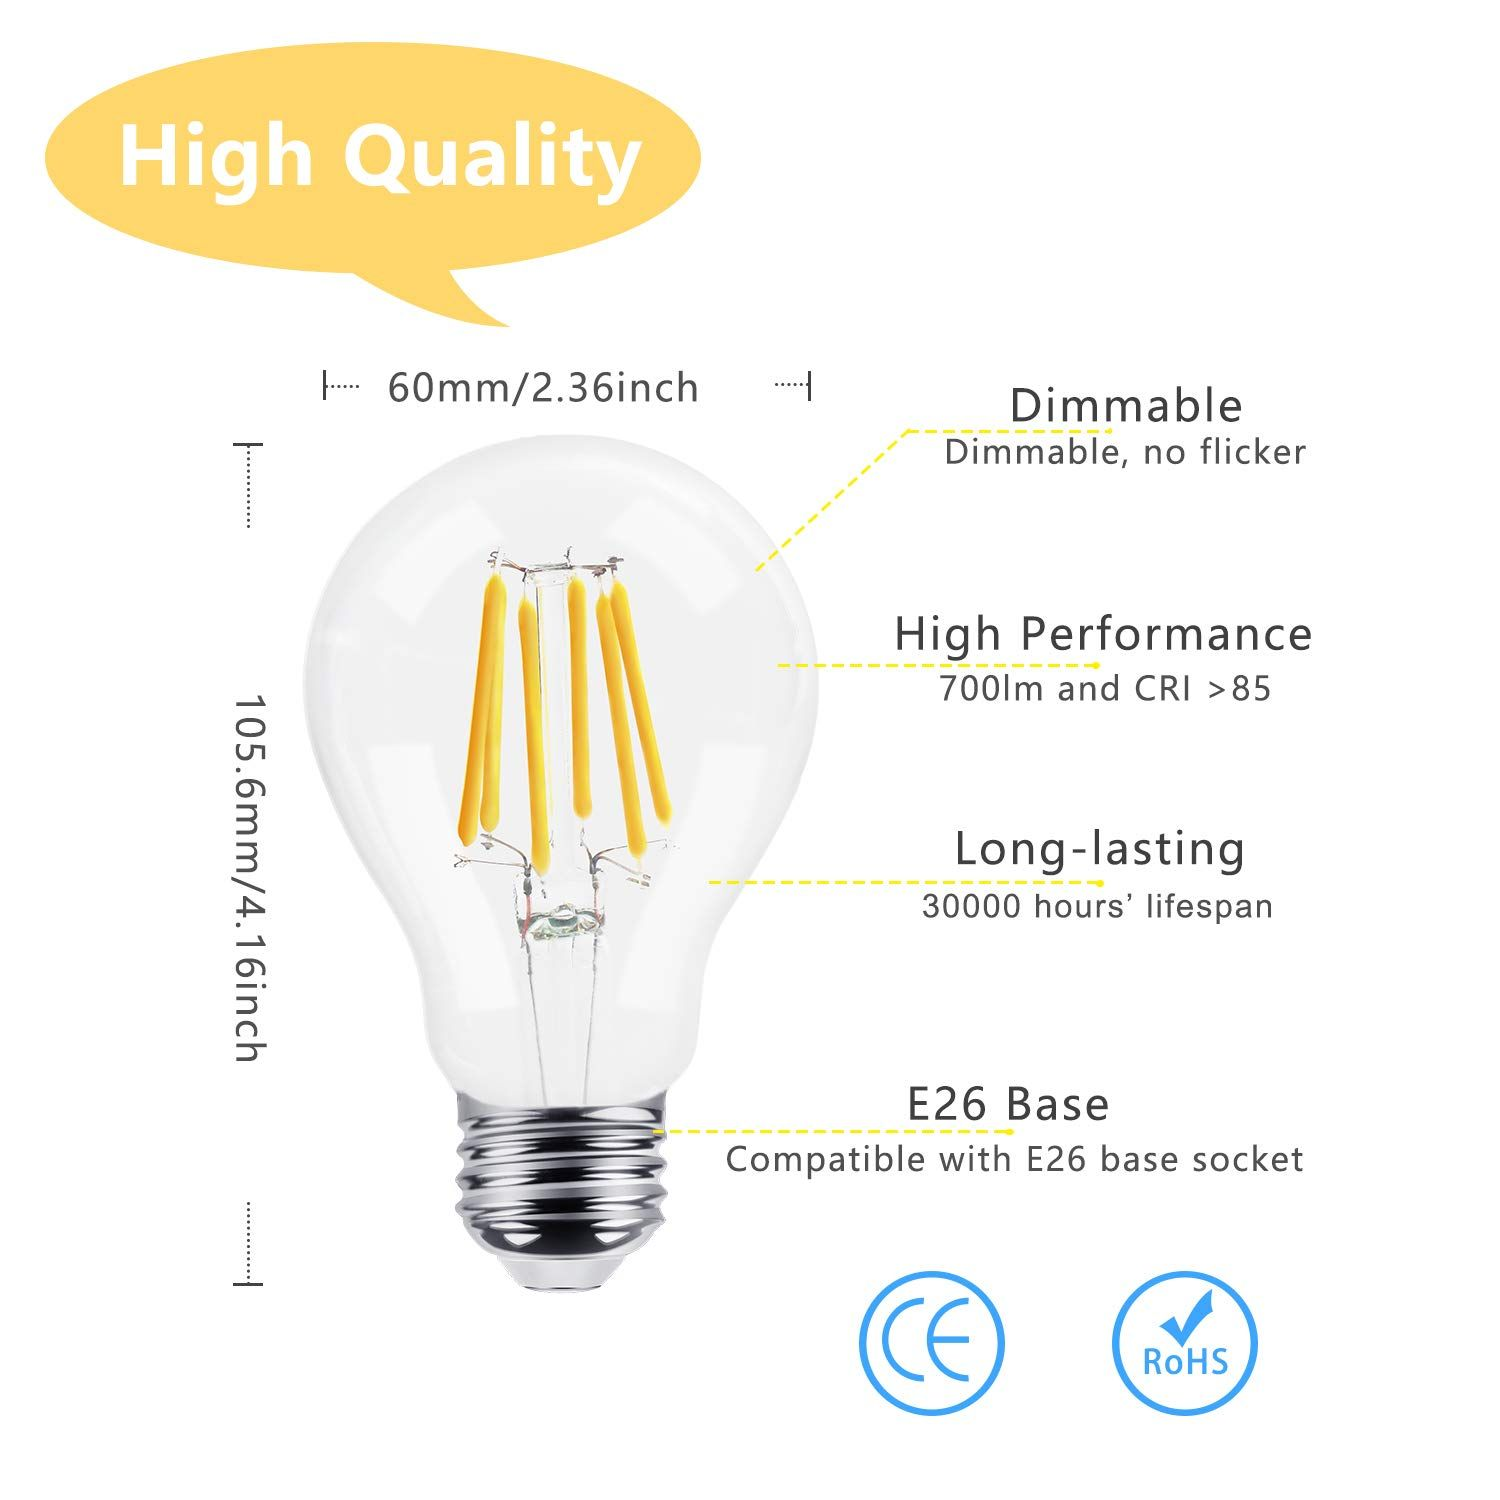 Dicuno Dimmable A19 A60 Edison Led Bulb 6w 60w Equivalent 360a